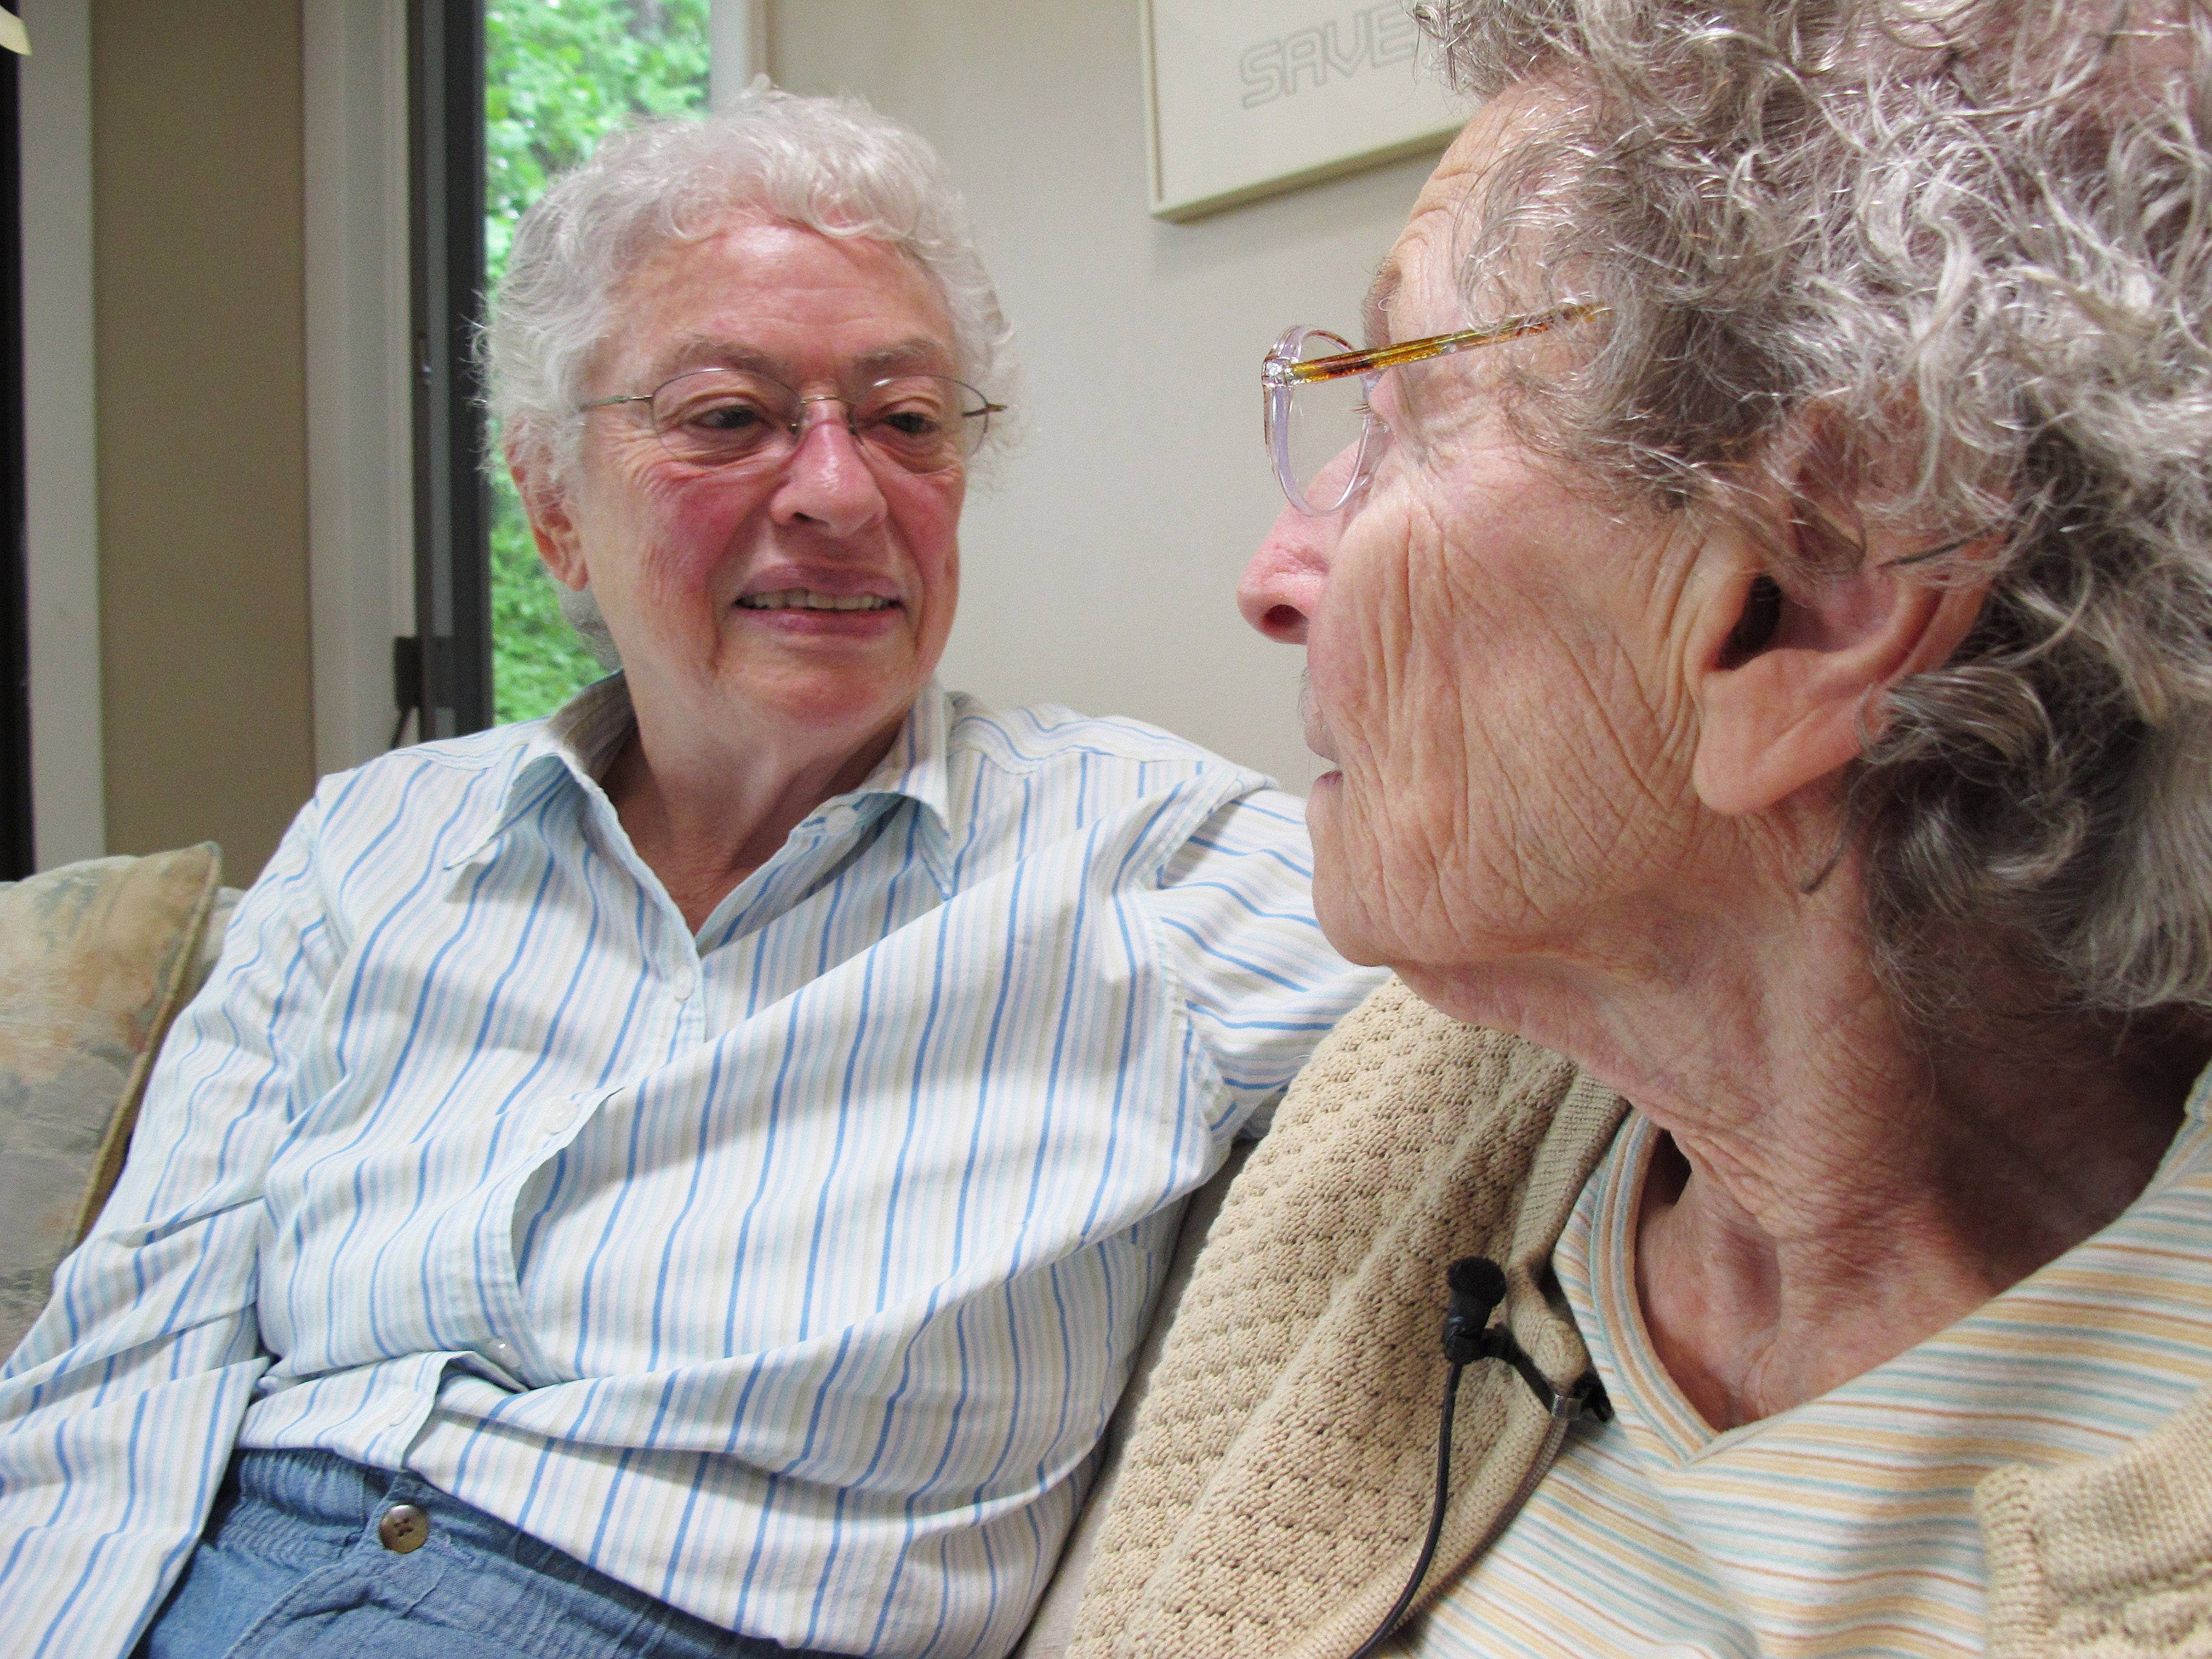 Together 48 years, couple fights NC marriage ban